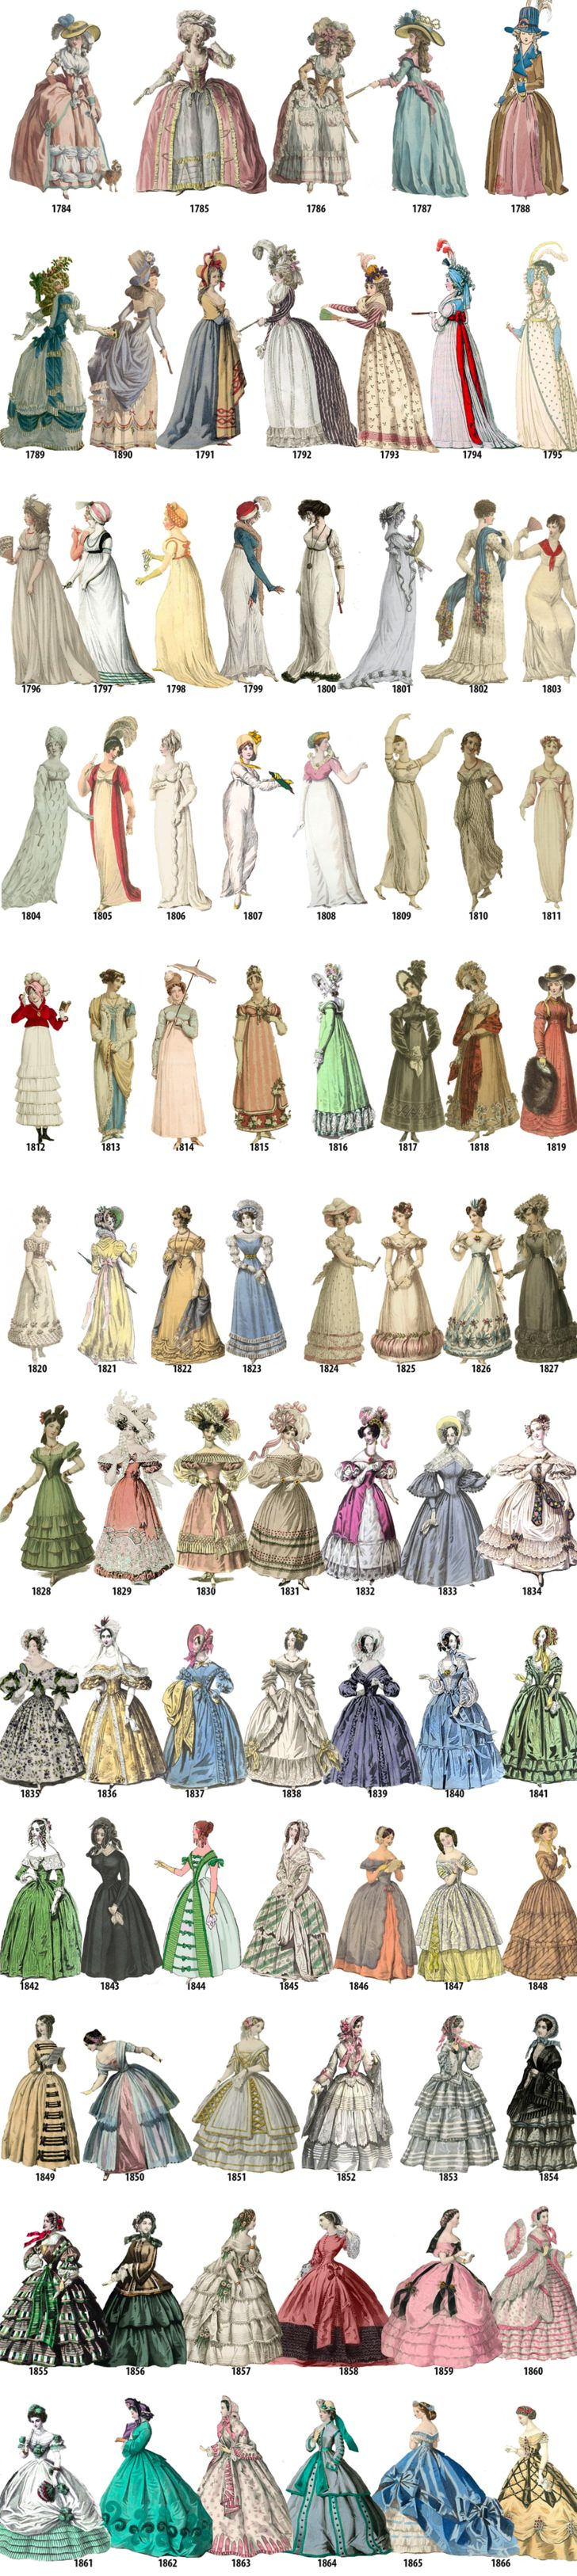 Women's fashion in every year from 1784-1970 - Album on Imgur